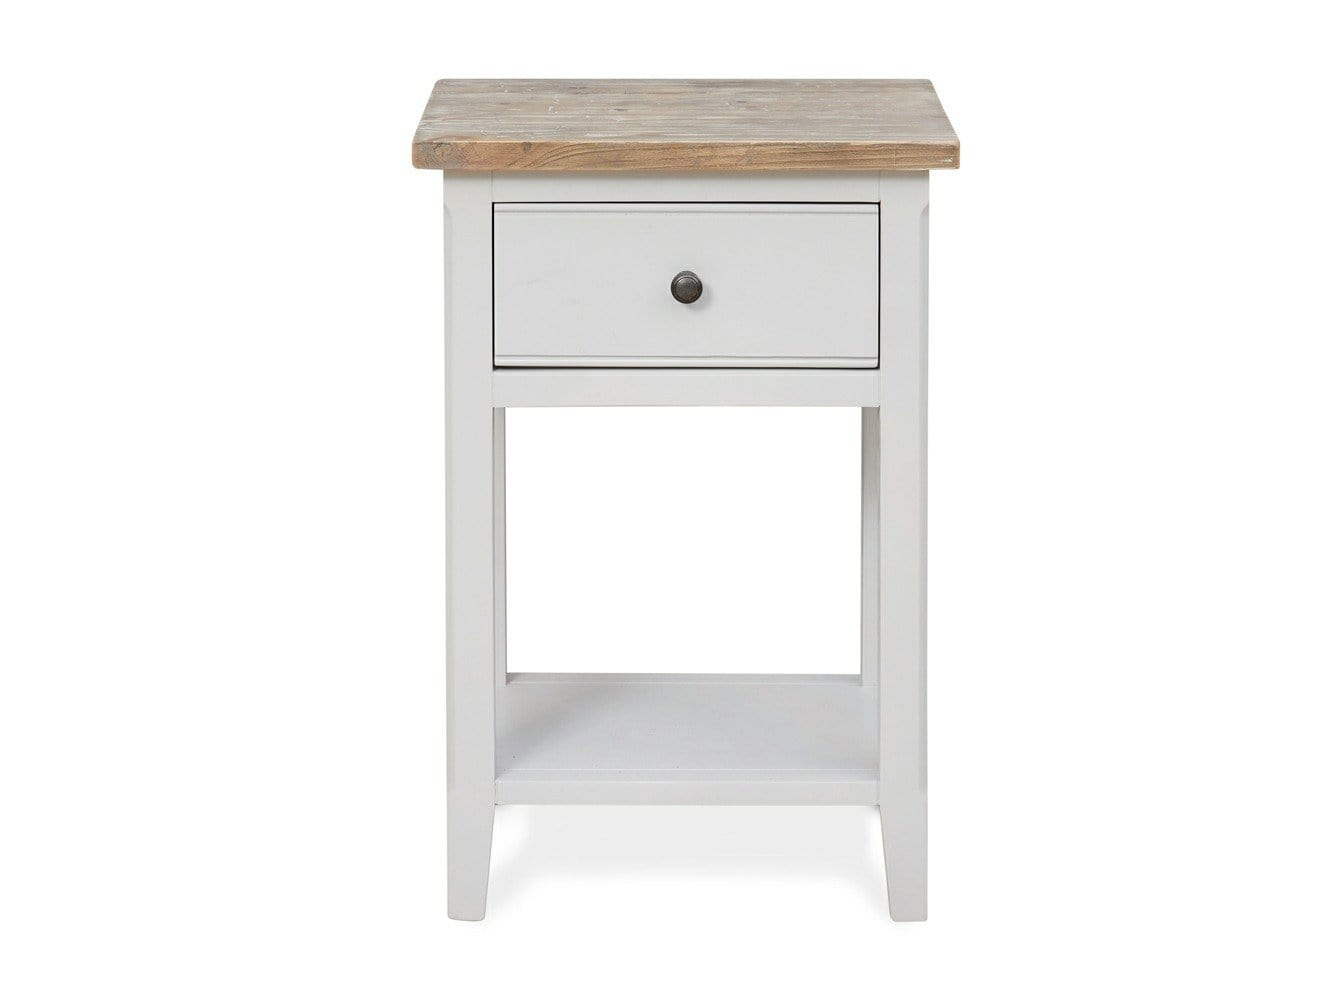 Grey side table with one small drawer and natural look washed top surface